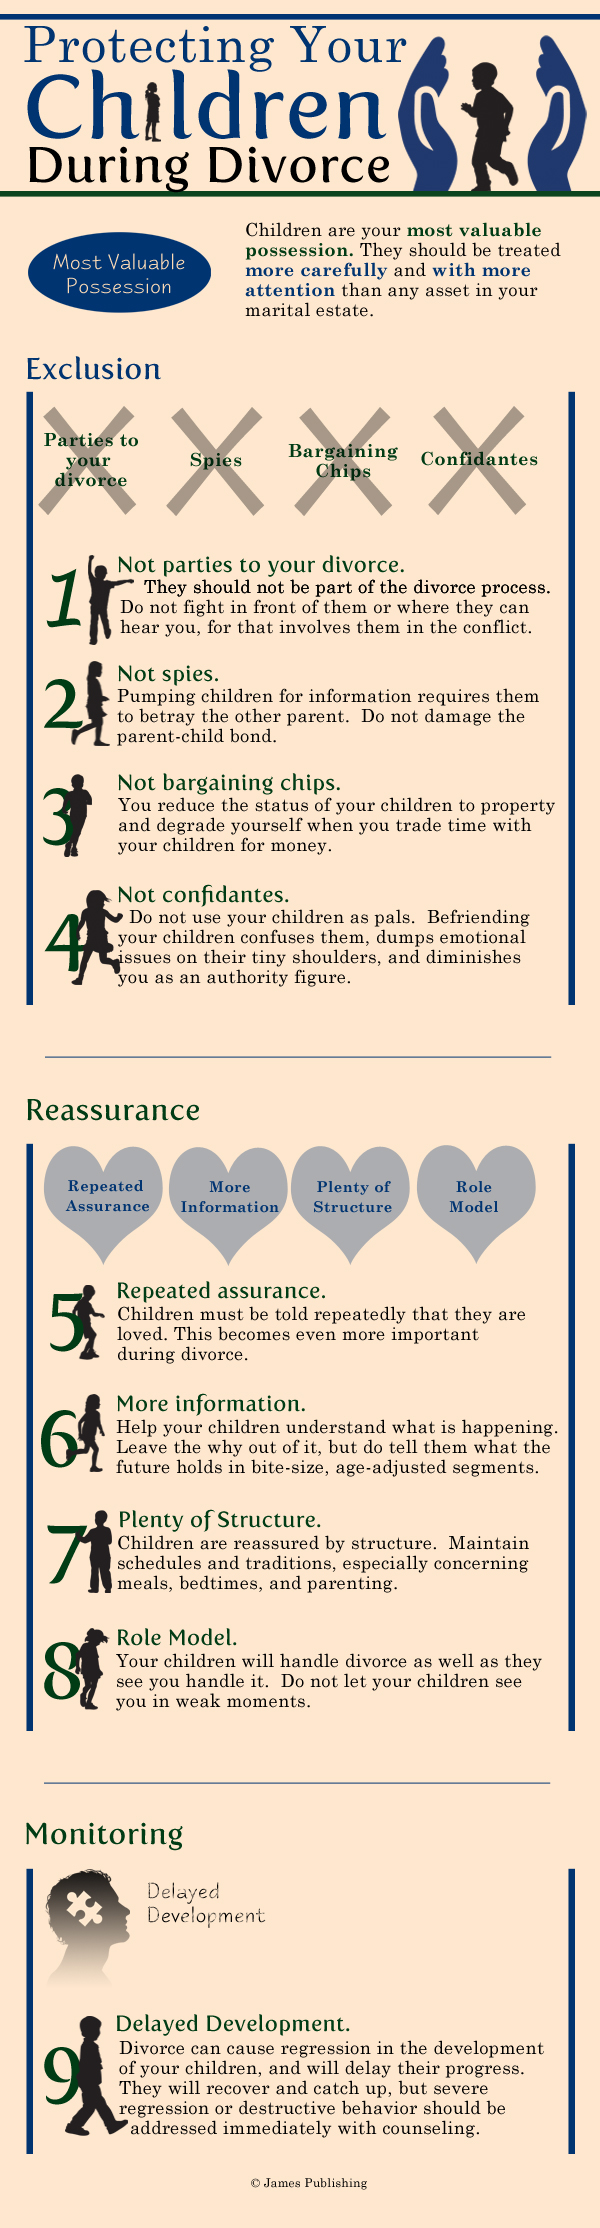 Austin Divorce Lawyers - Protecting Your Child Infographic